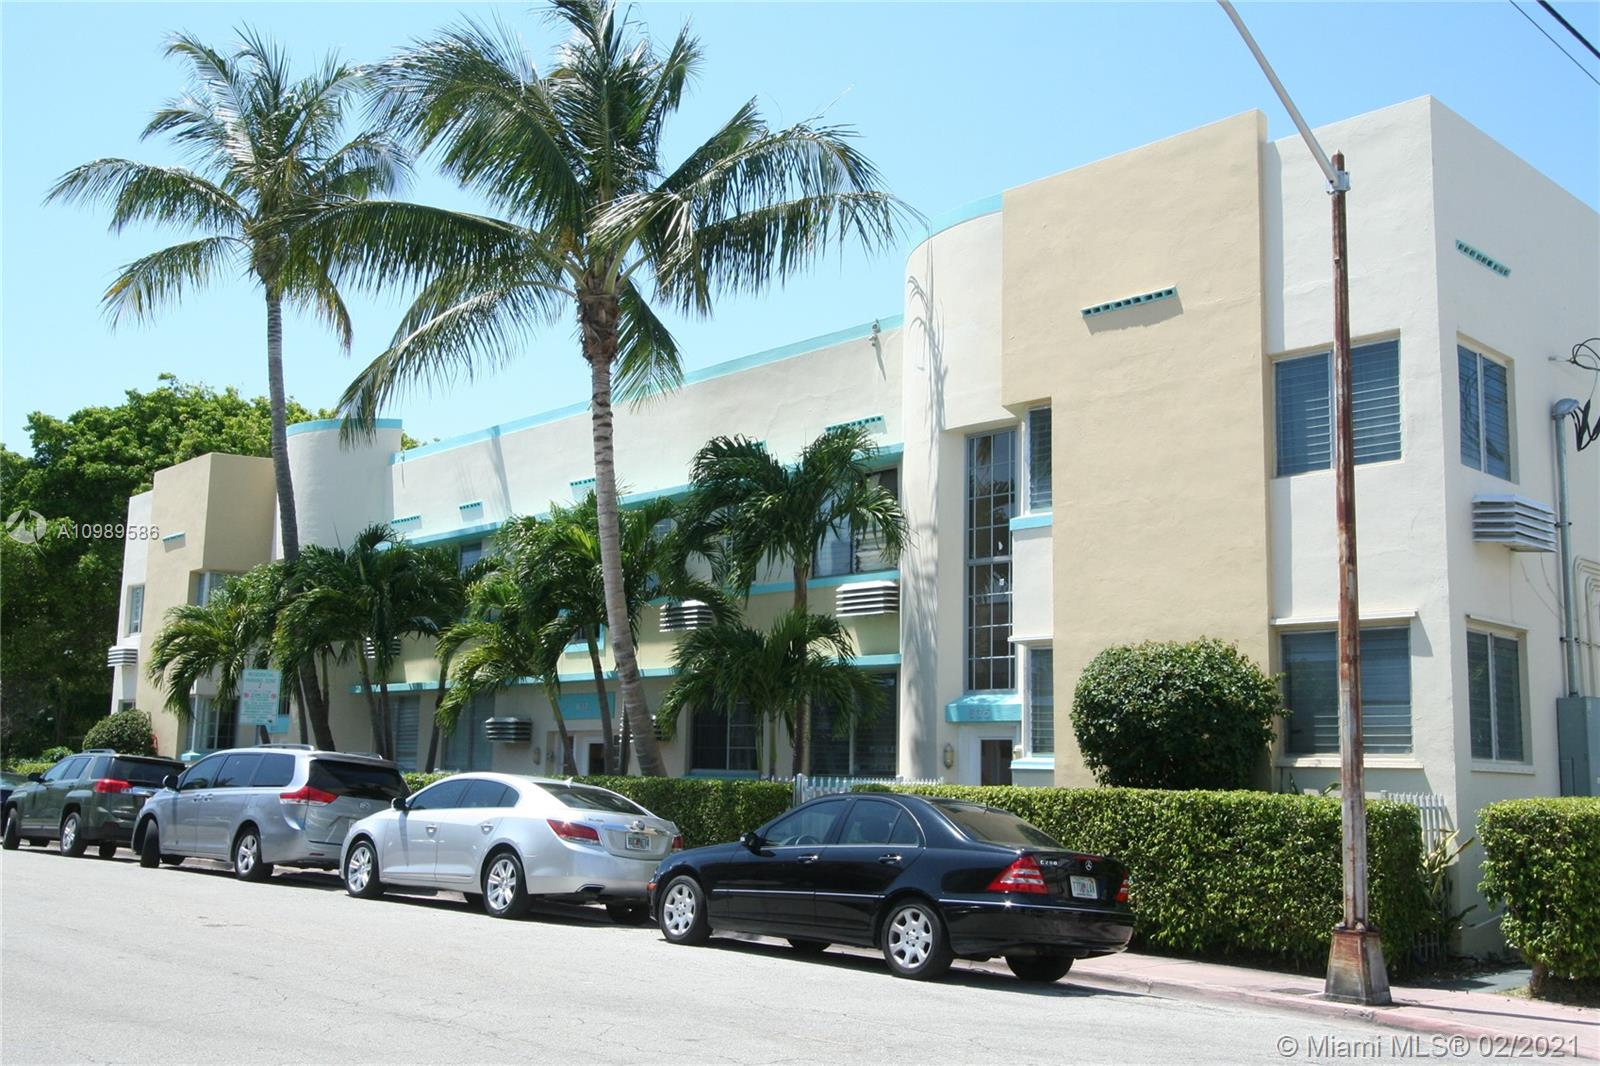 635  12th St #12 For Sale A10989586, FL